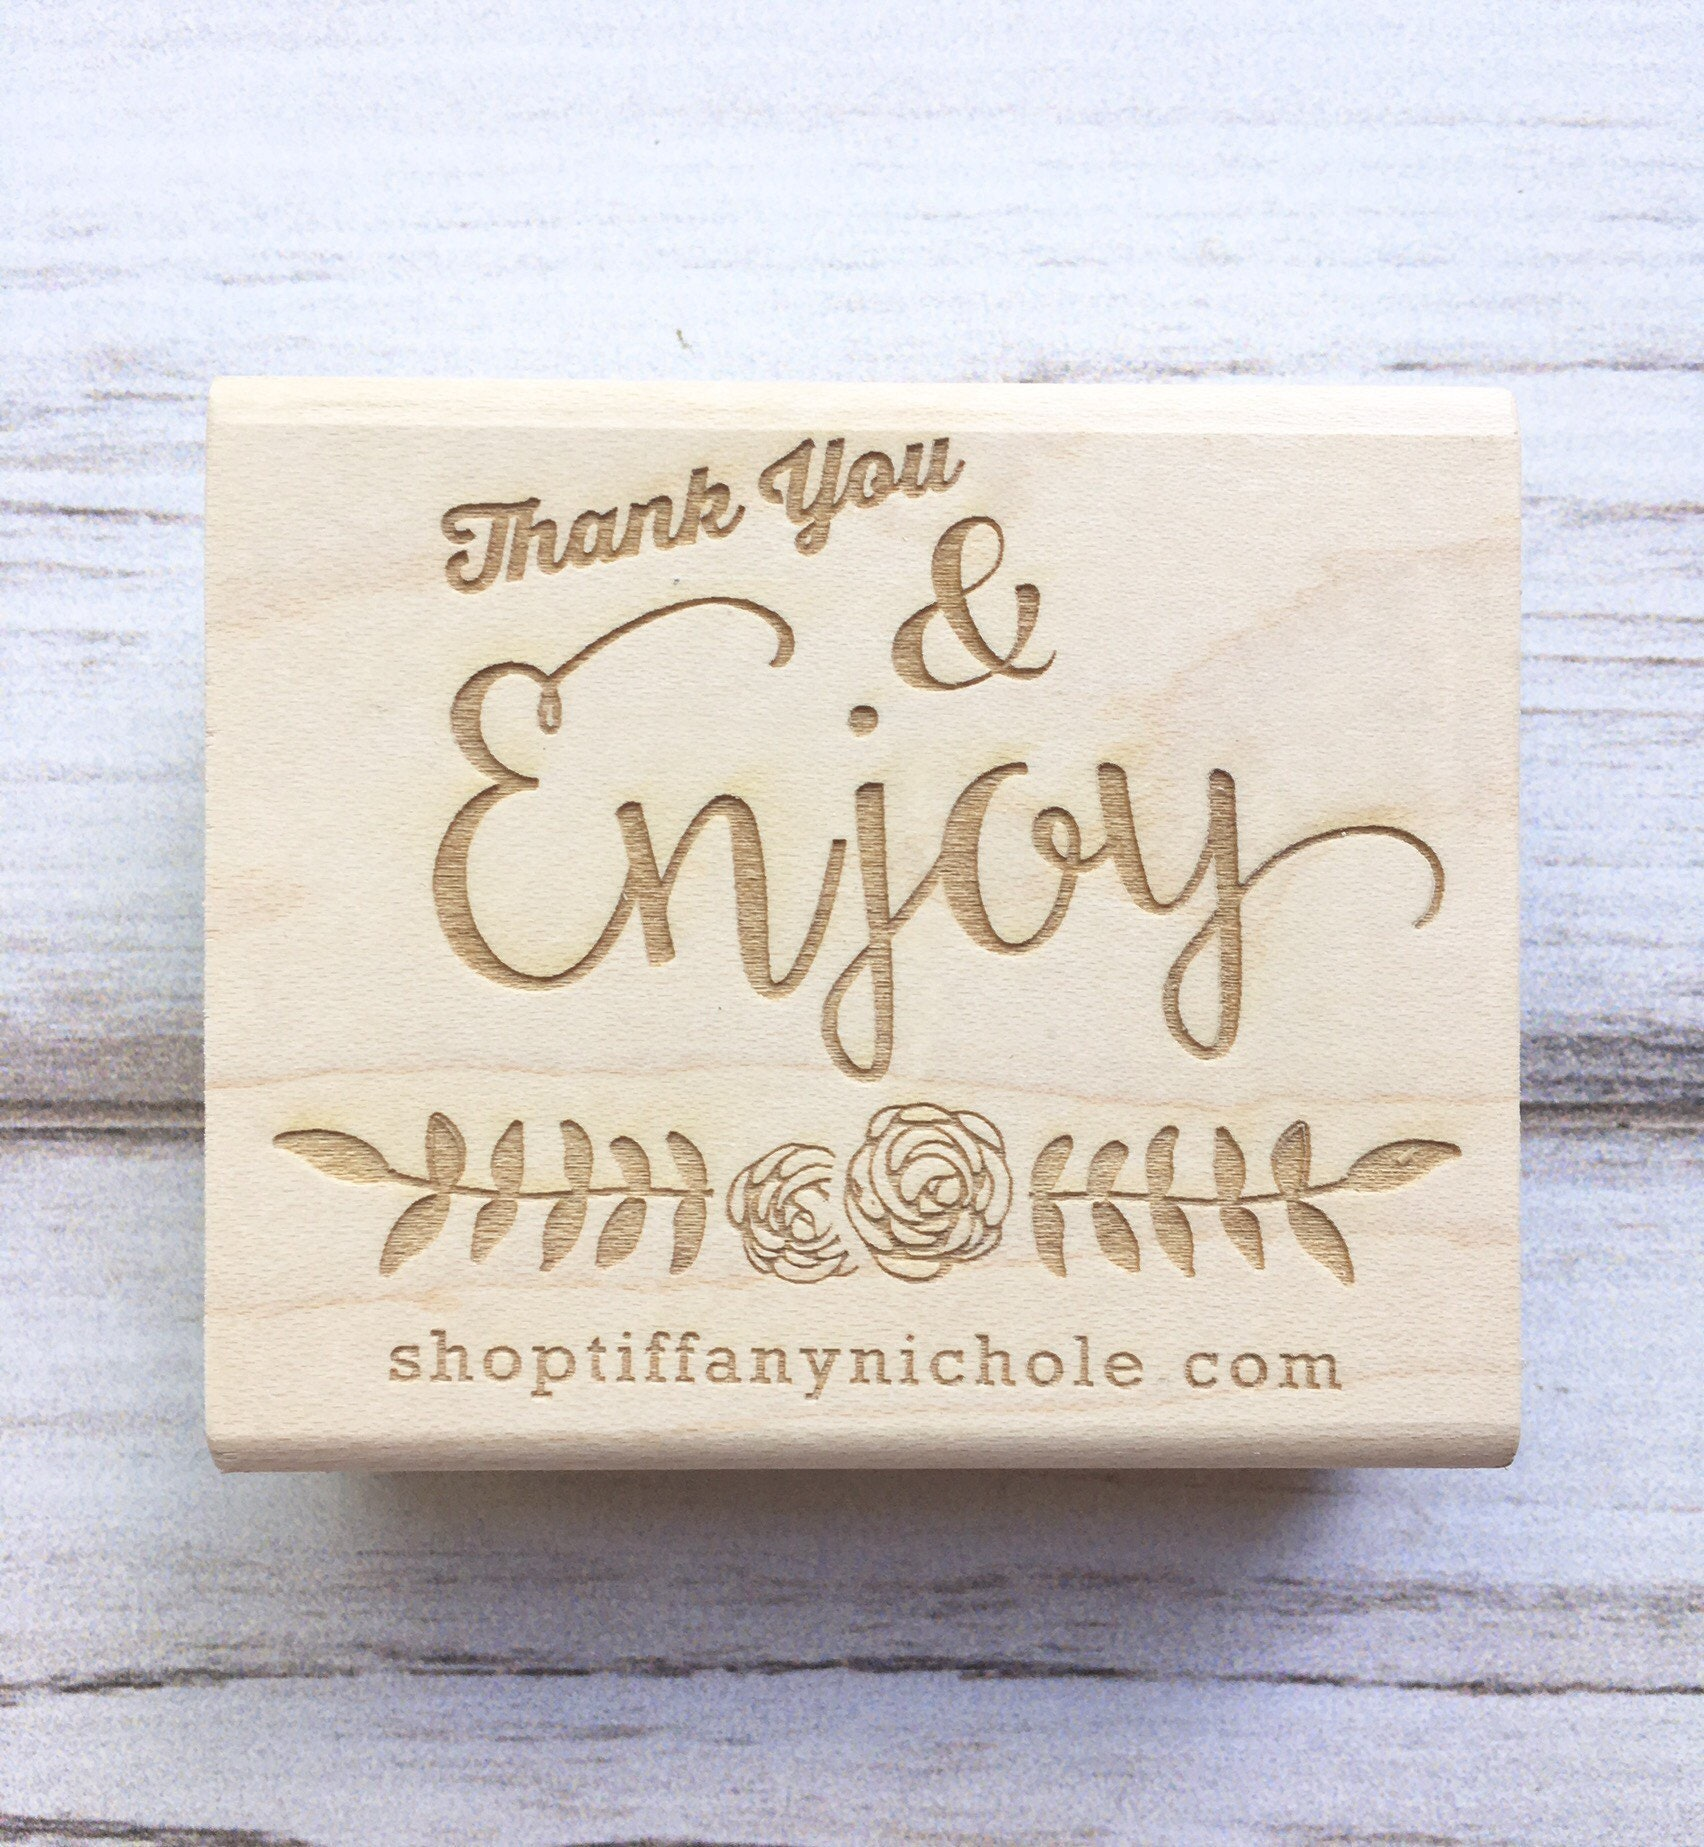 Thank You Stamp Website Business Name Enjoy Calligraphy